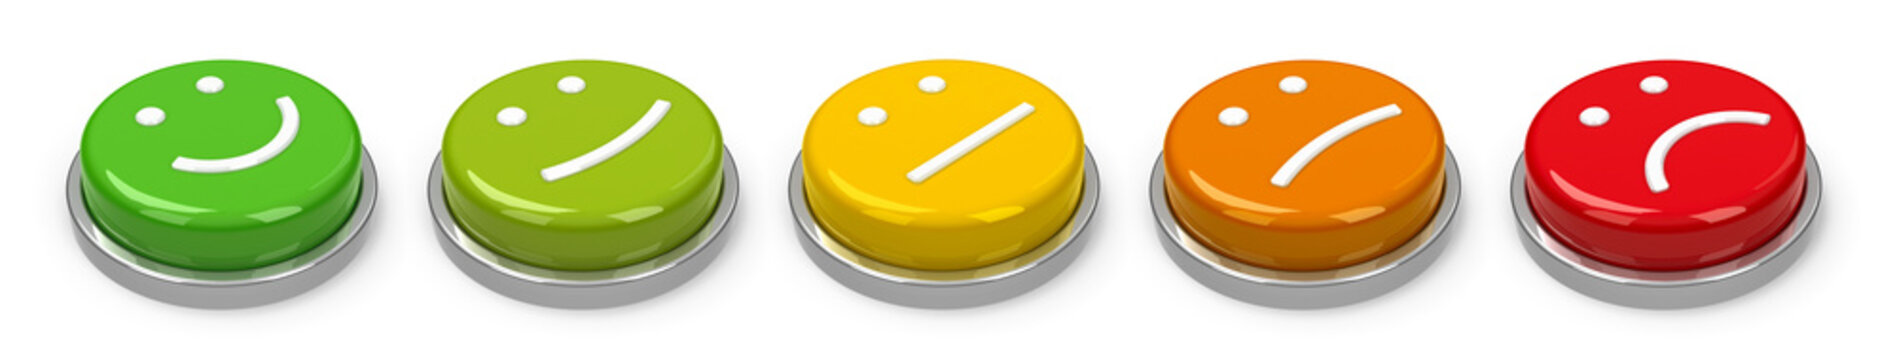 Buttons emotions #2